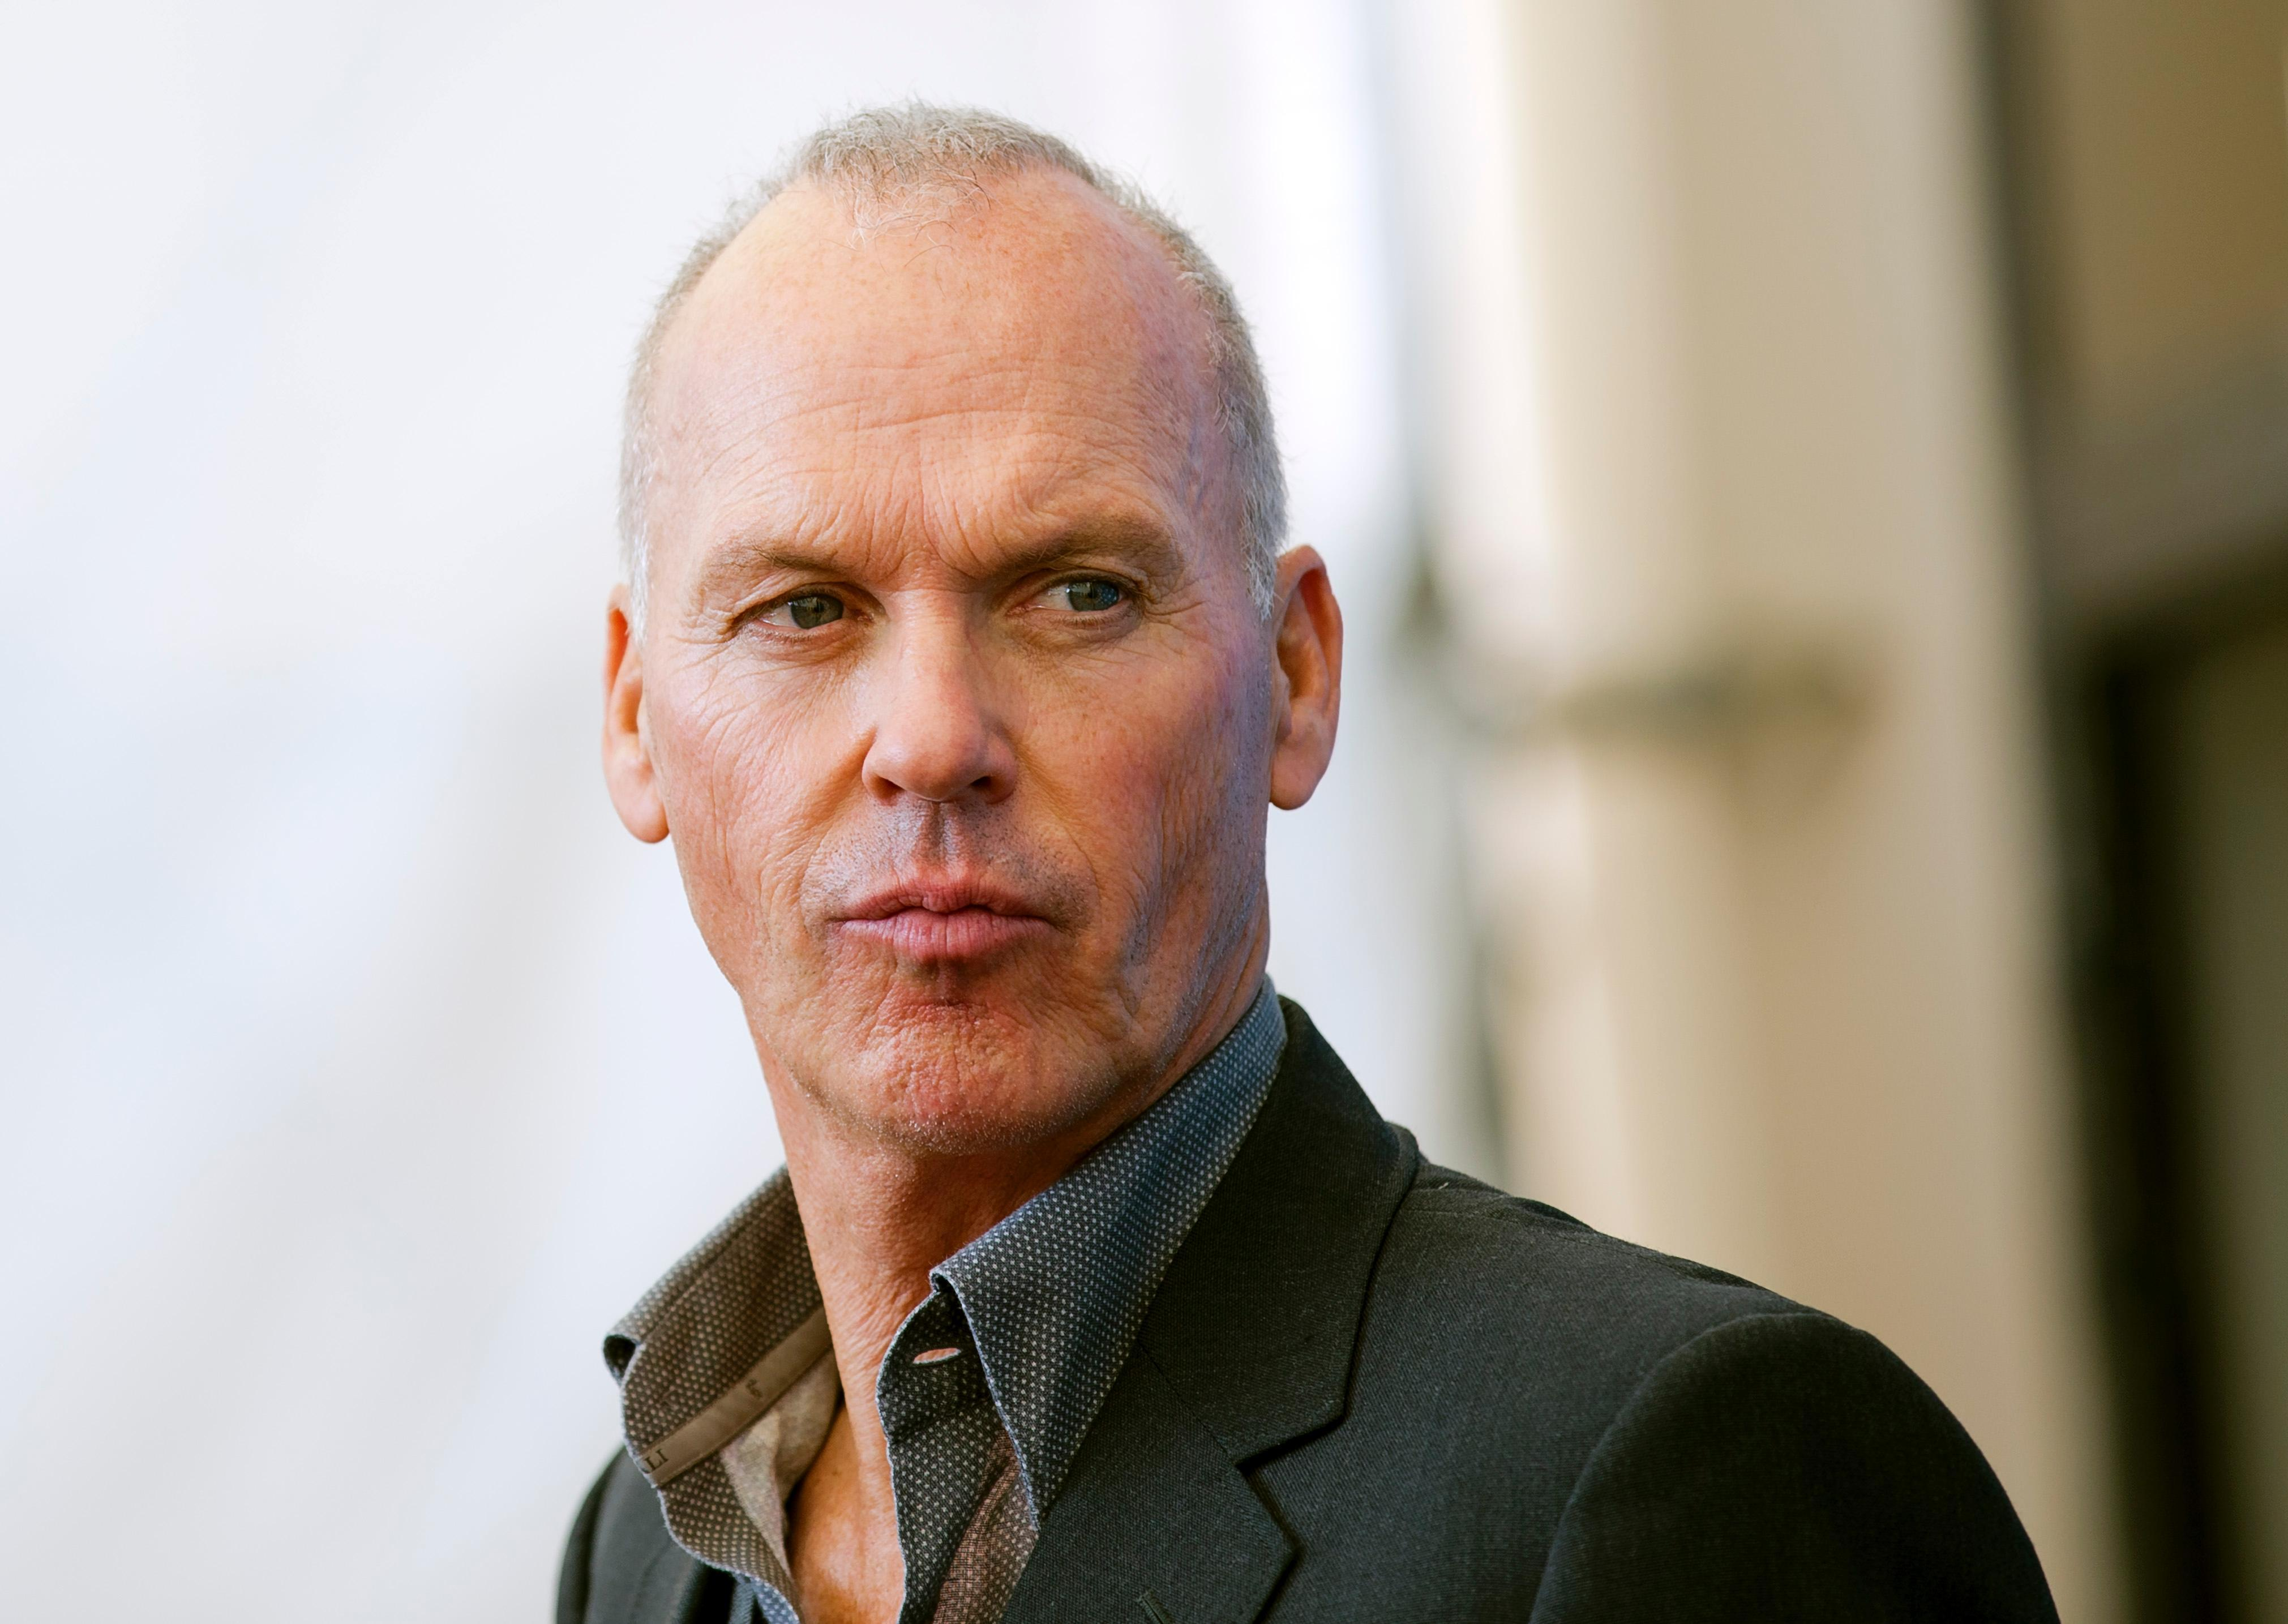 Michael Keaton podría interpretar al villano en Spider-Man Homecoming